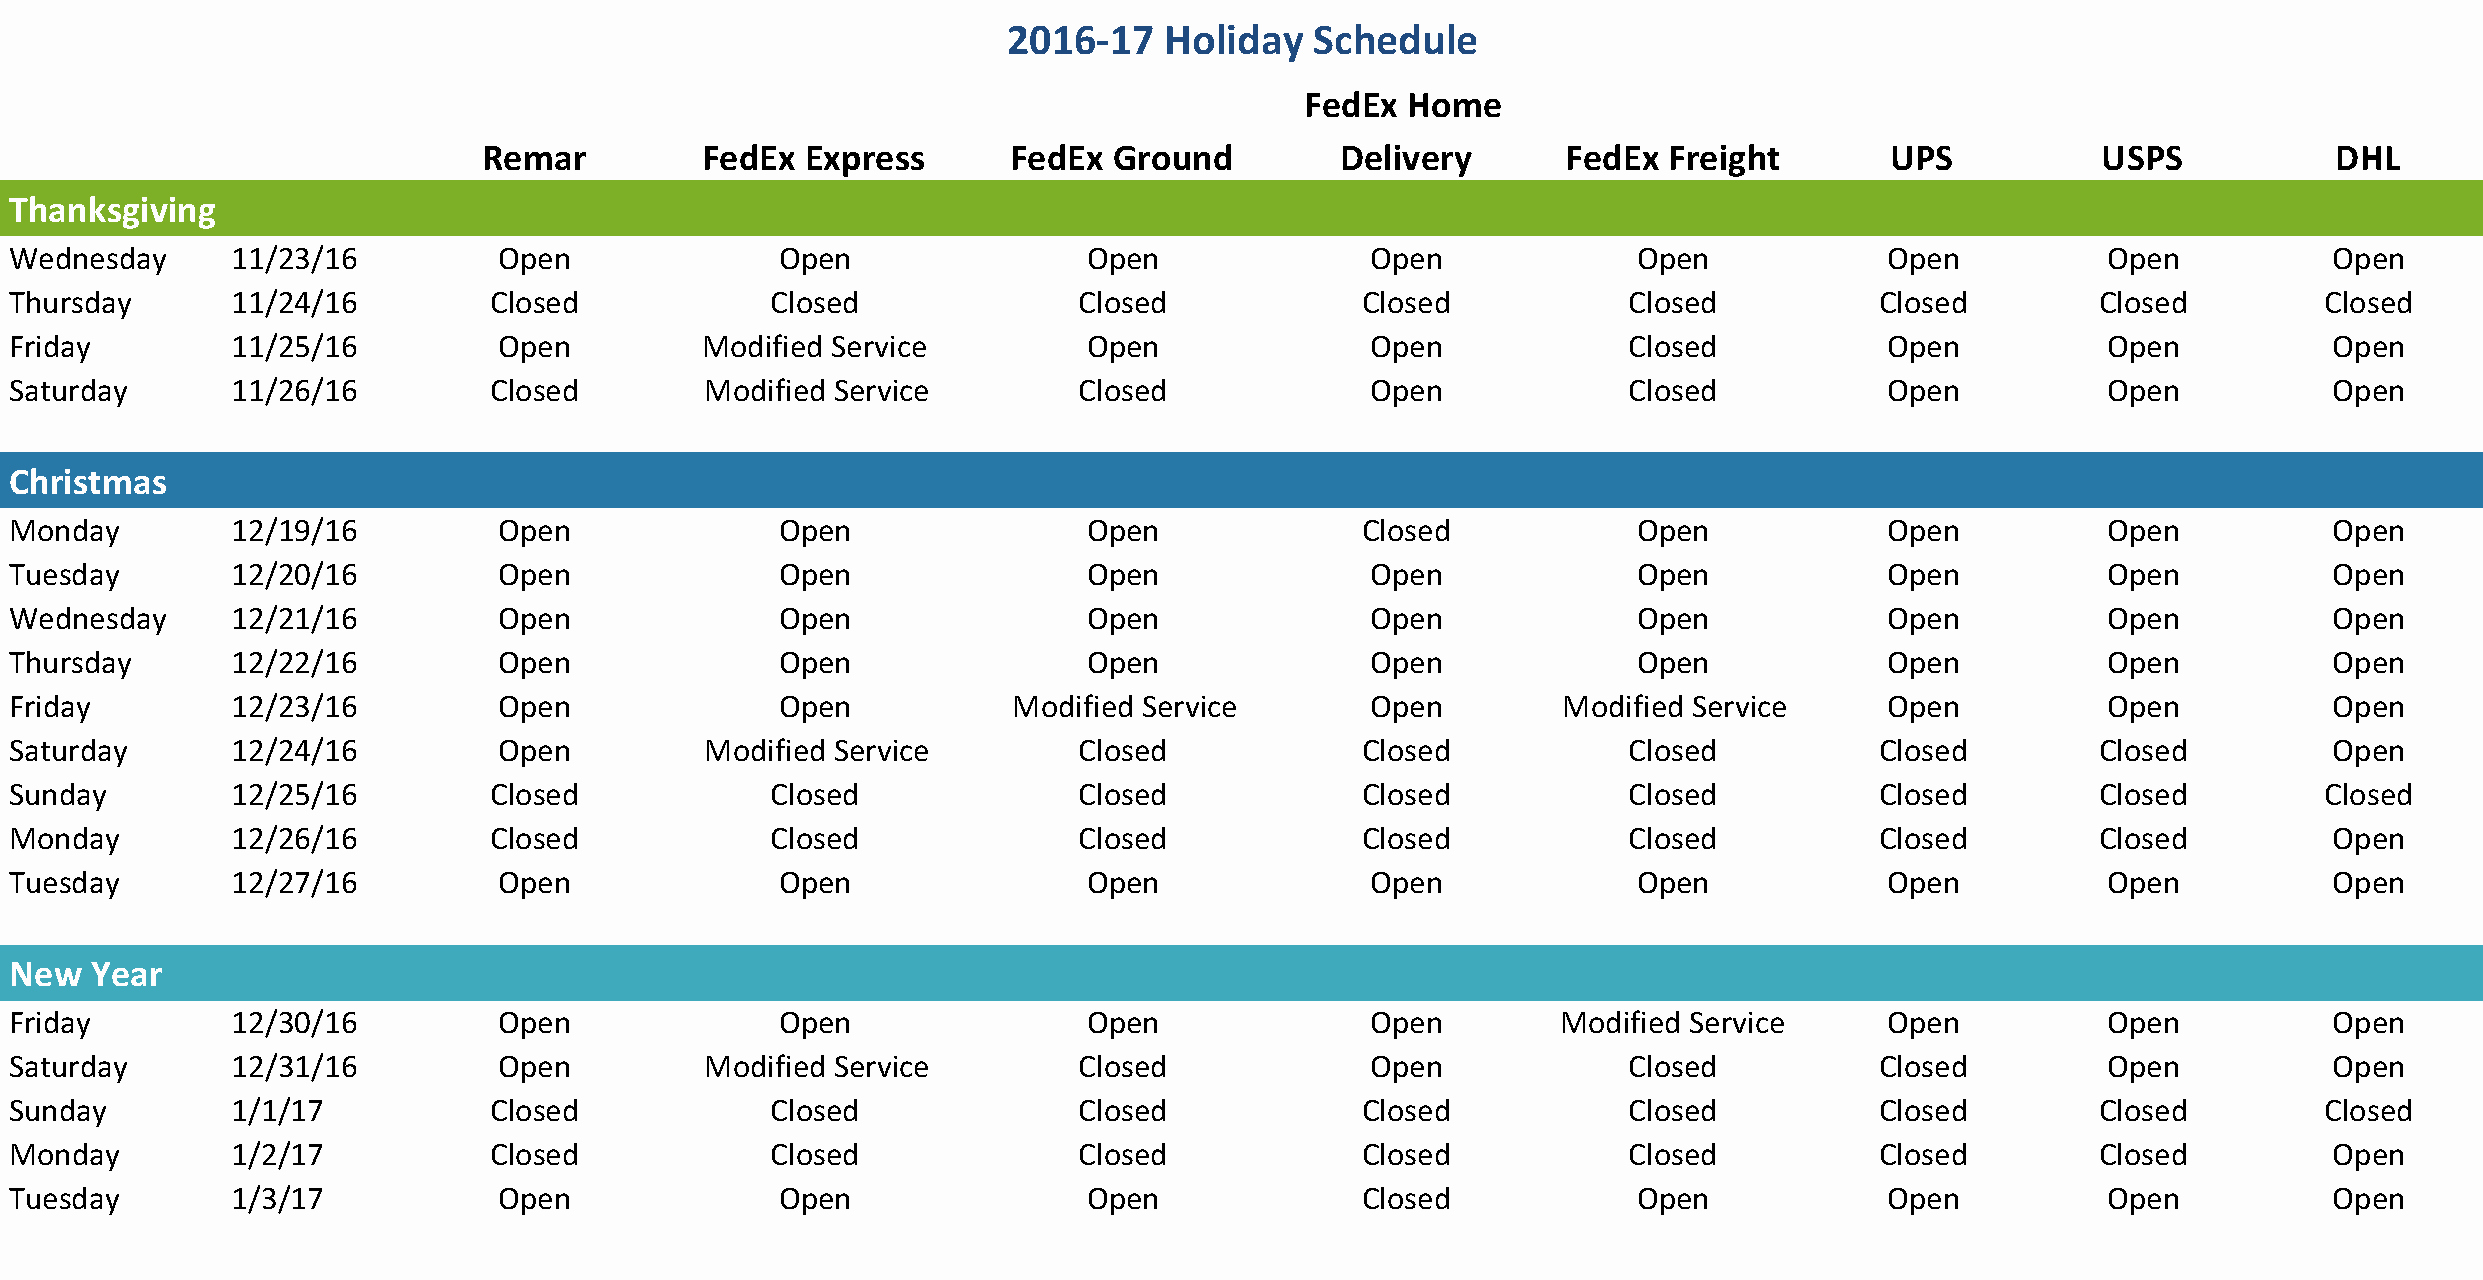 Fedex Holidays Schedule 2019 Beautiful Fedex Holiday Schedule 2016